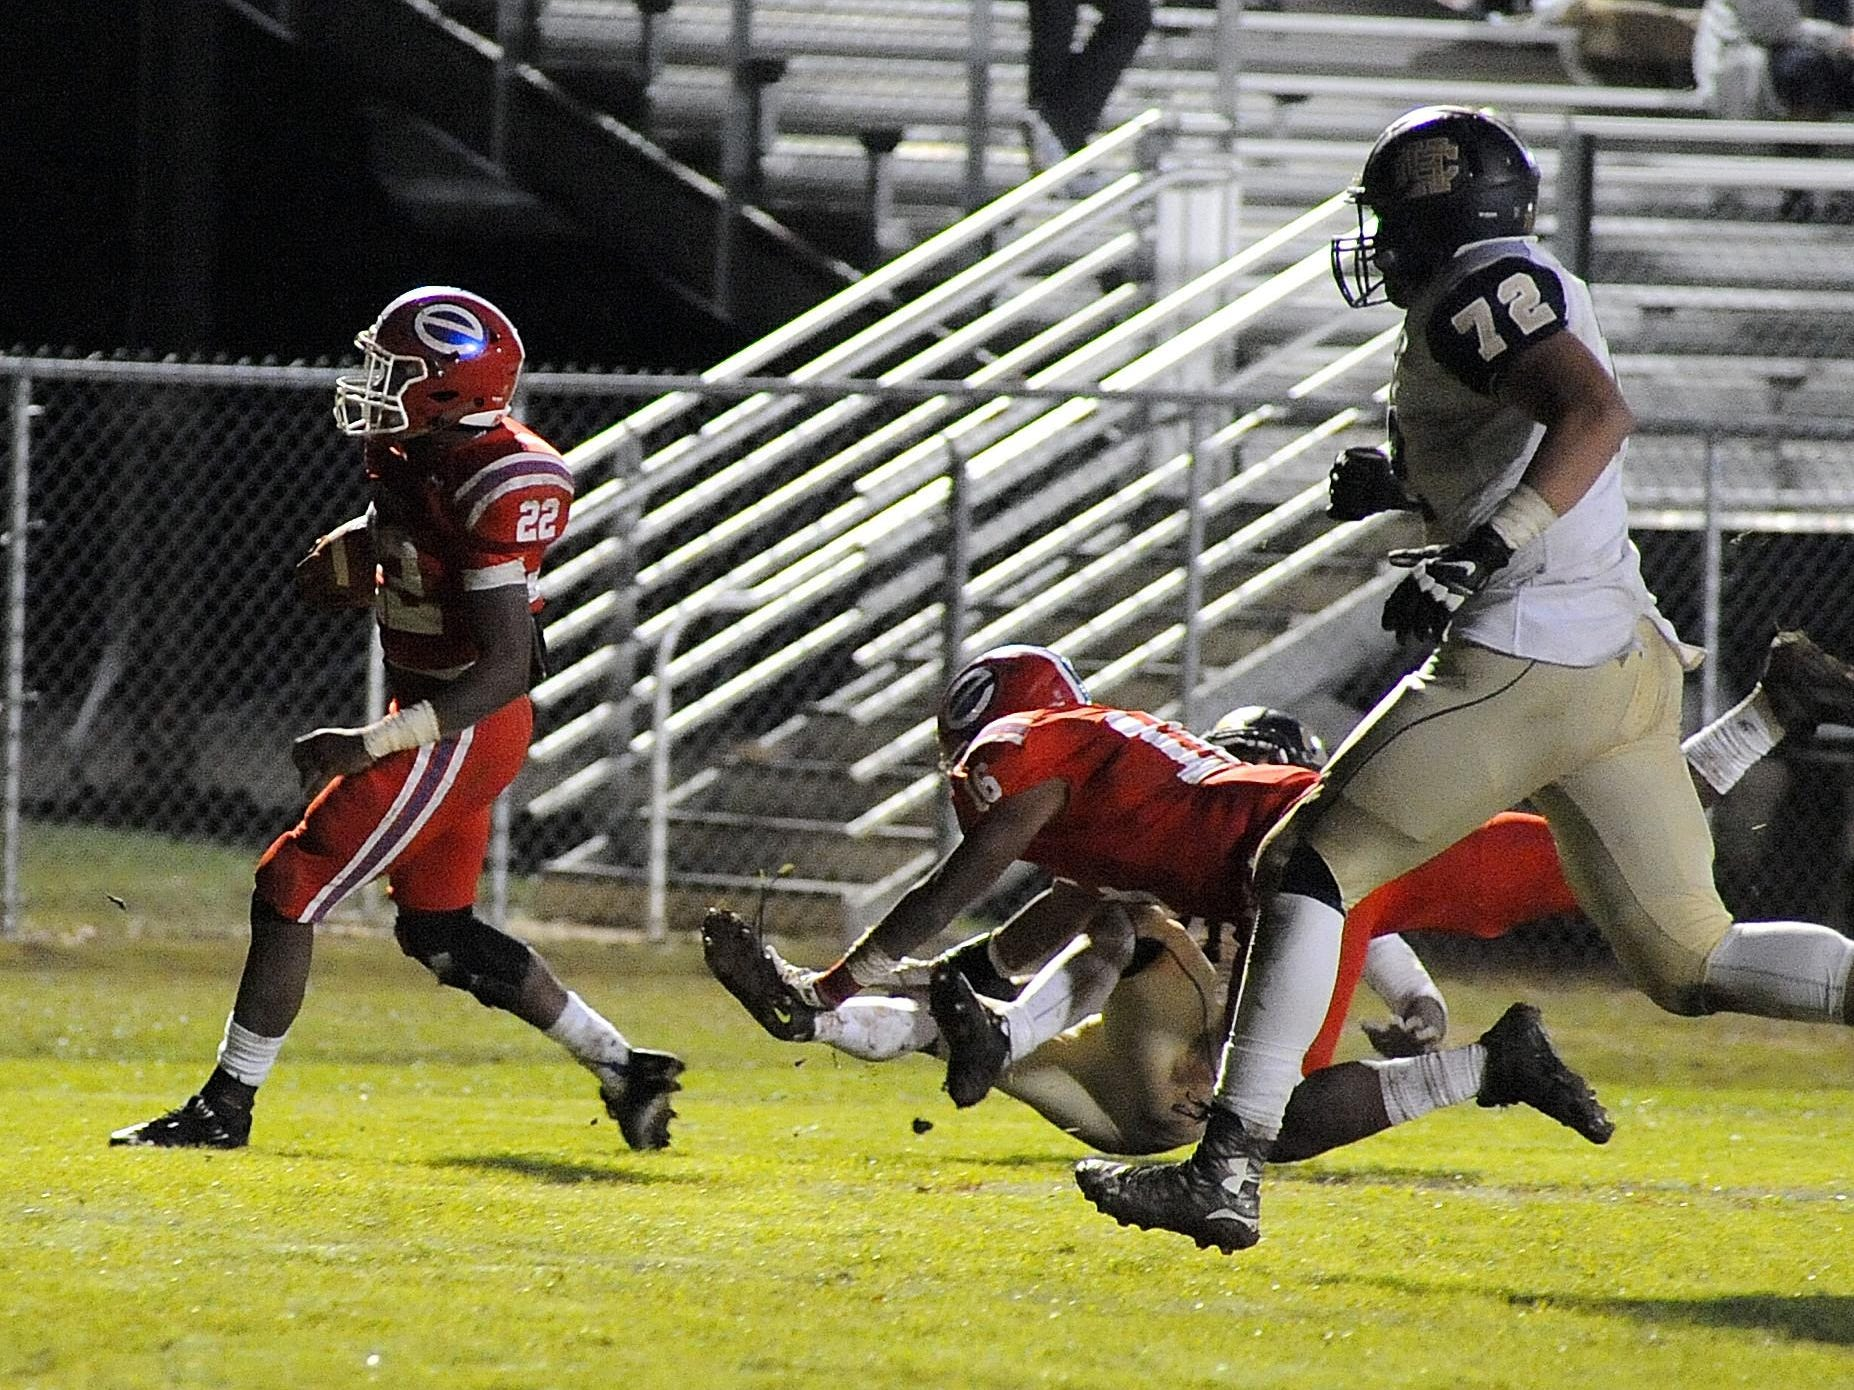 Evangel defensive back Bobby Bell scores on a pick-6 against Holy Cross in last season's LHSAA Division I state playoff contest at Rodney Duron Field.